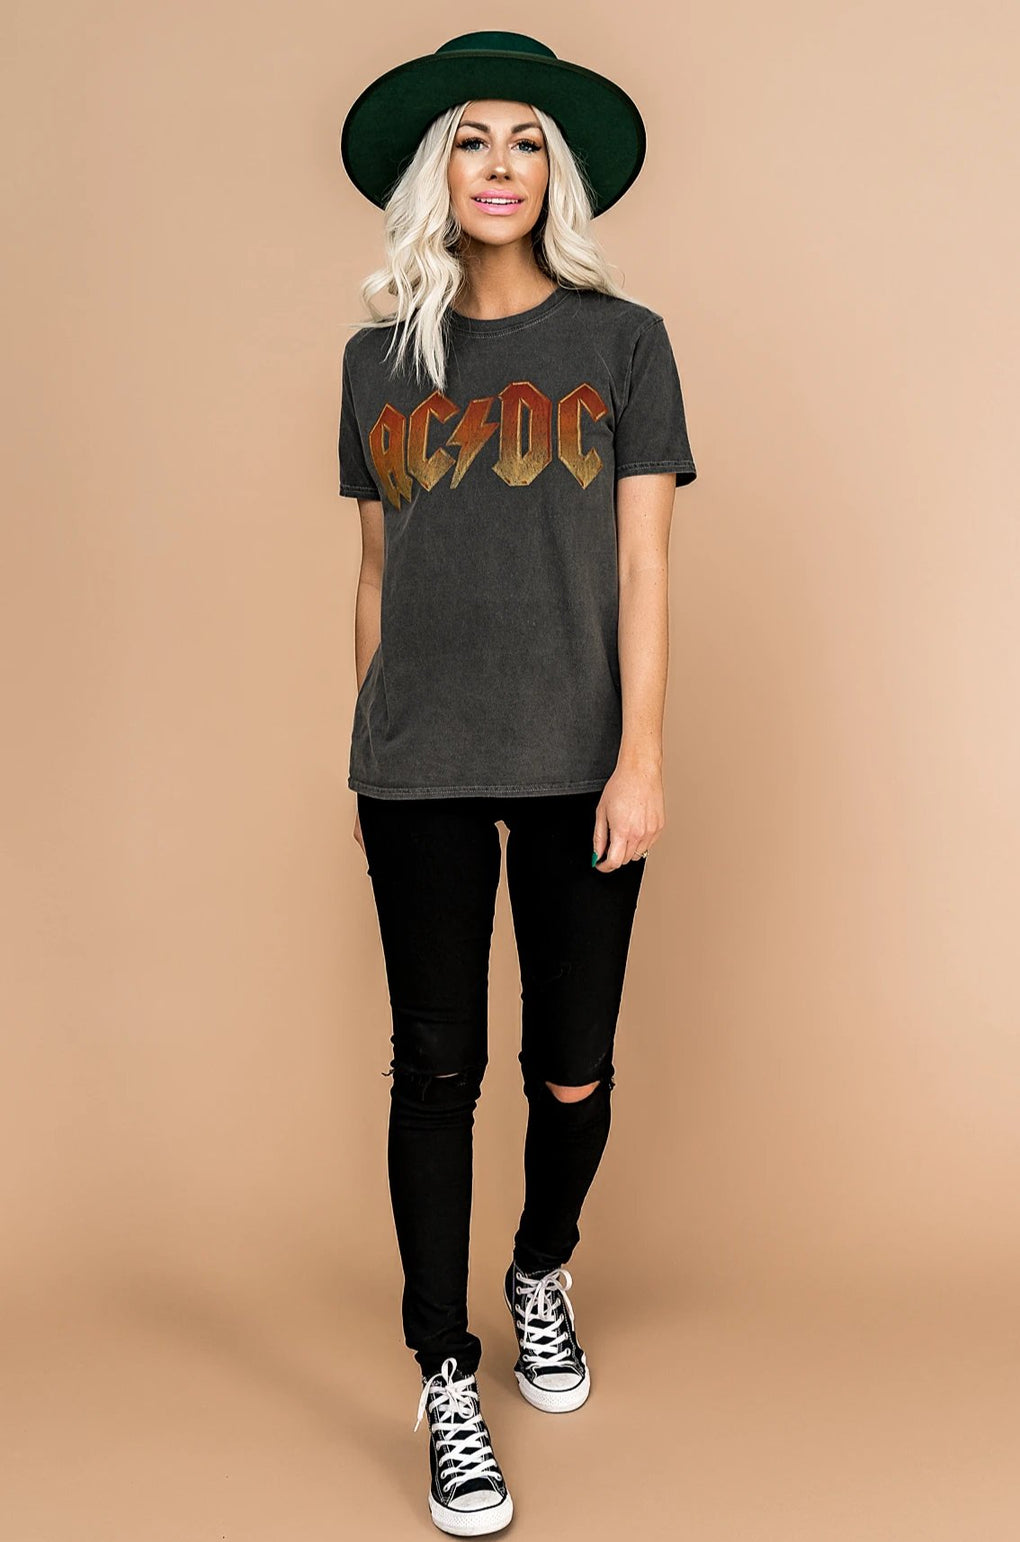 Back in Black AC/DC Band Tee